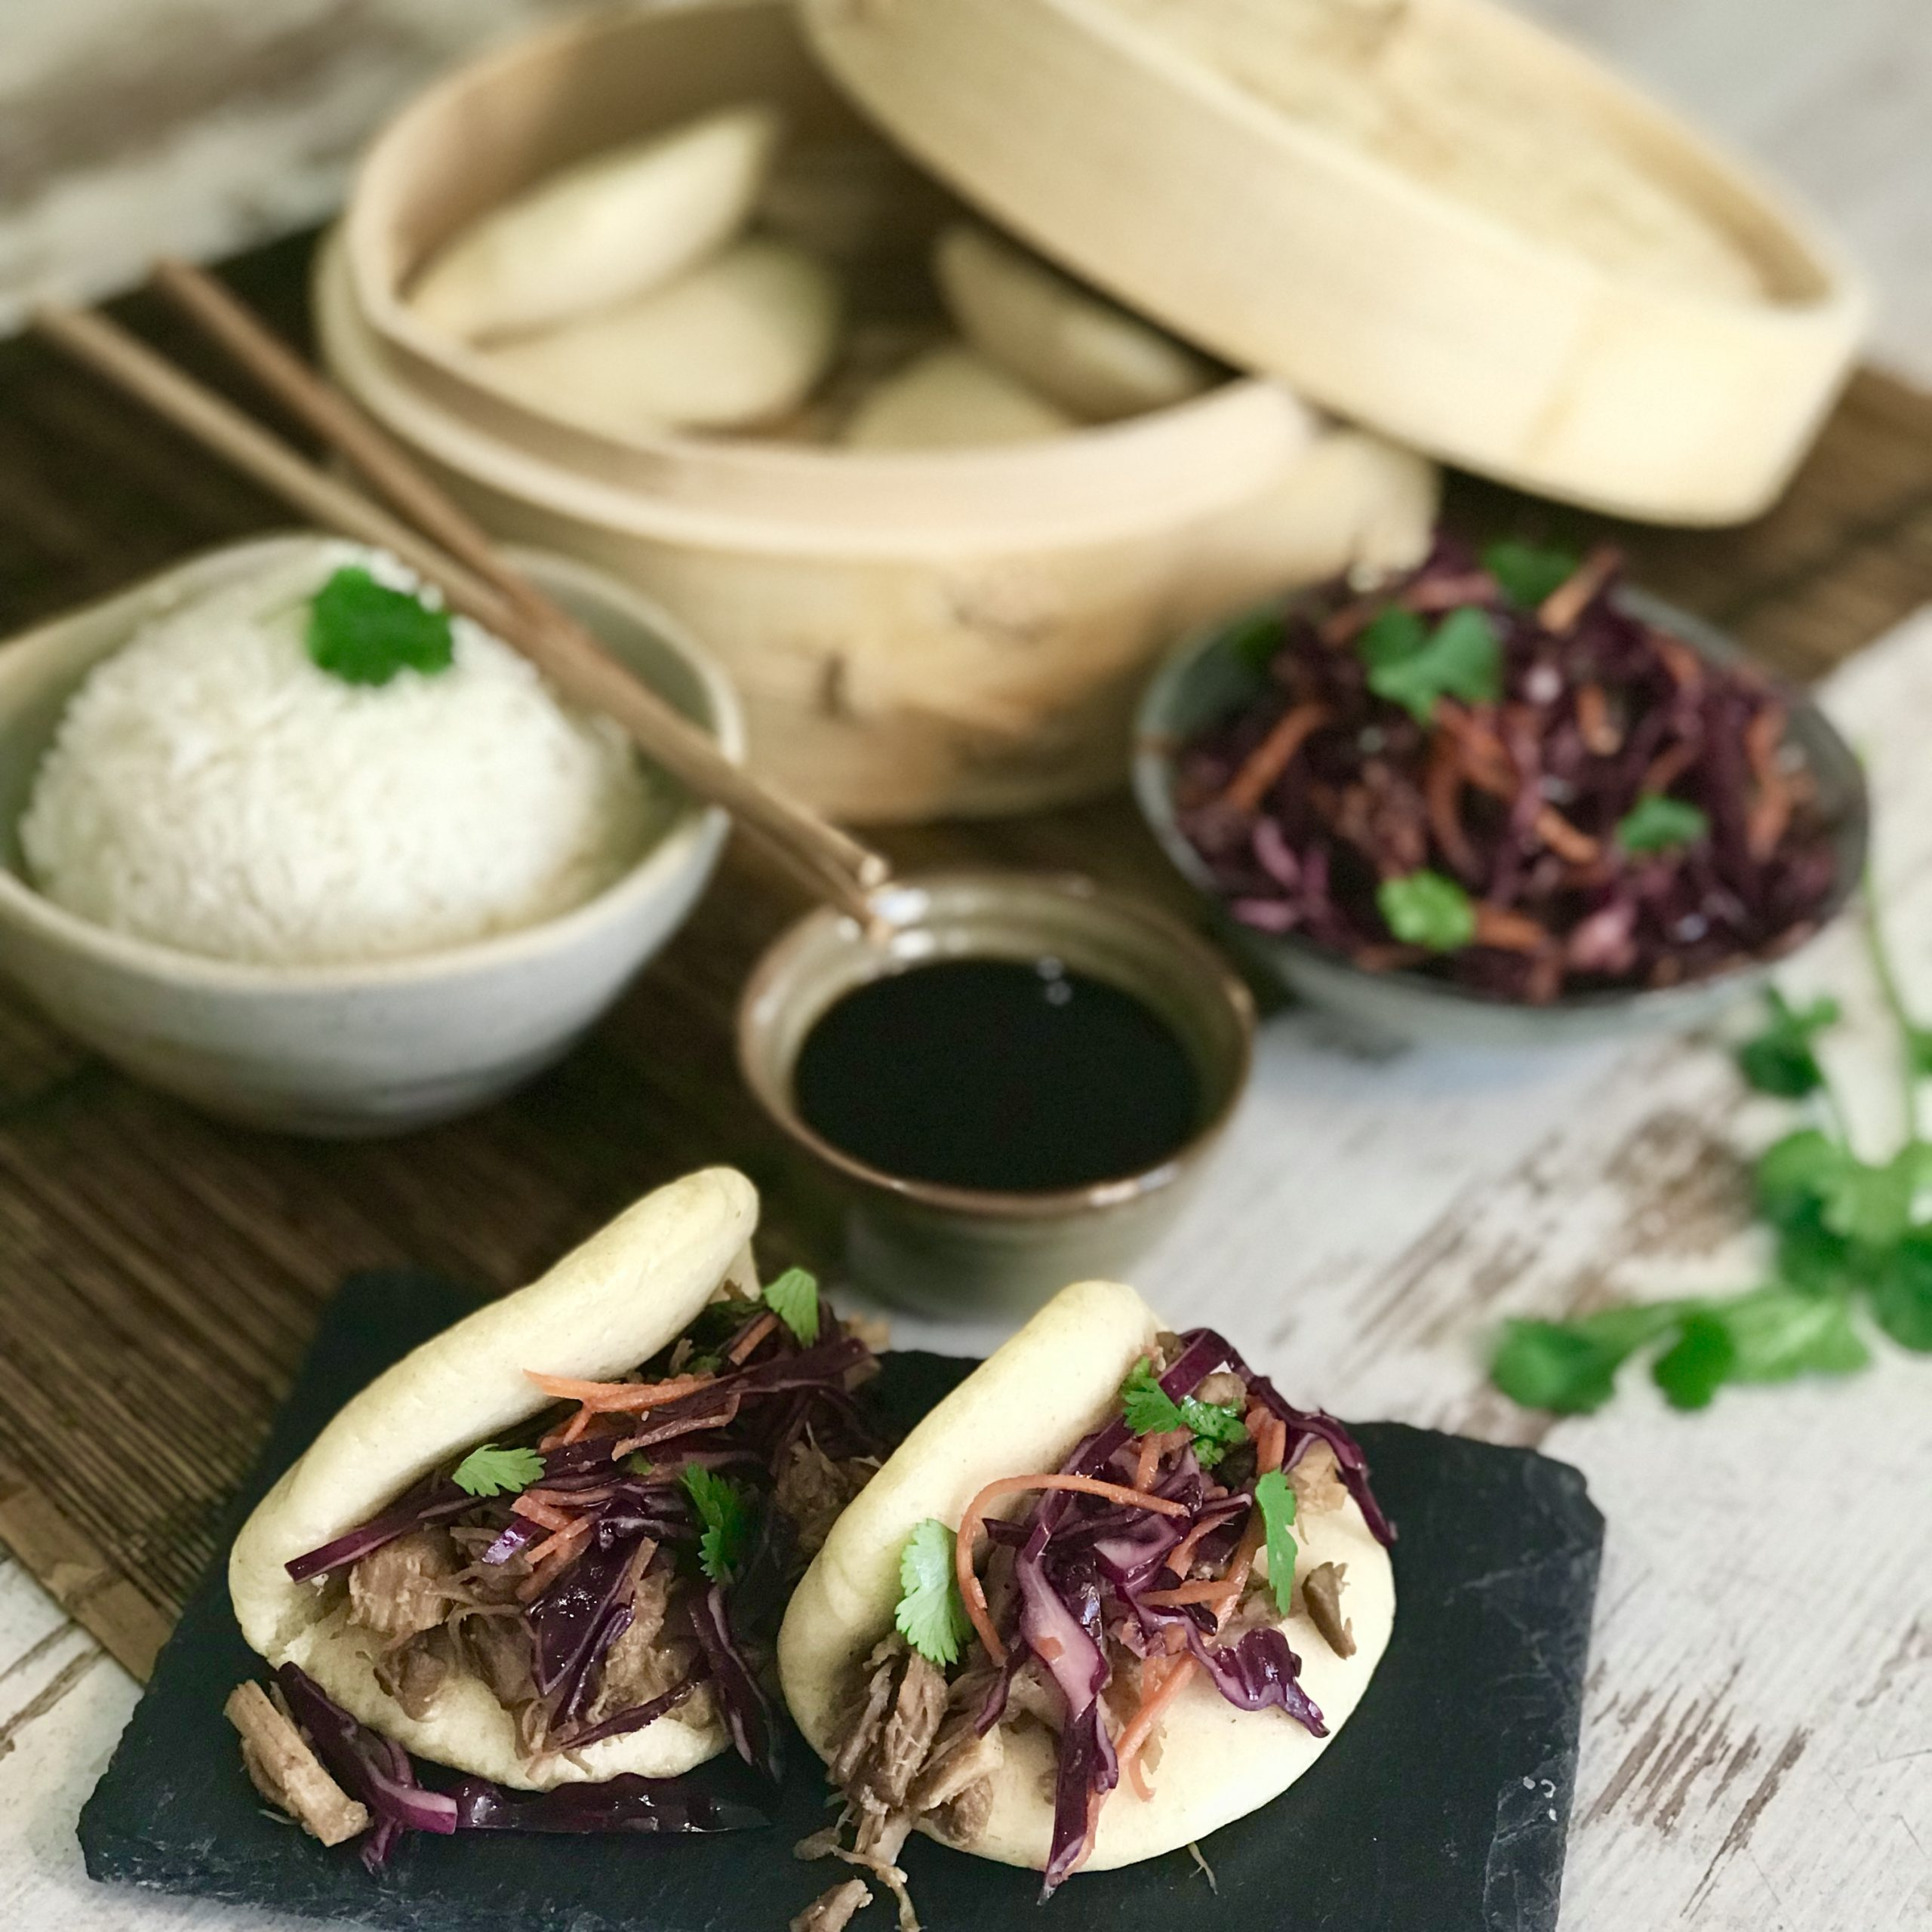 Chinese Steamed Buns (Bao) with Asian-Style Pulled Pork and Slaw